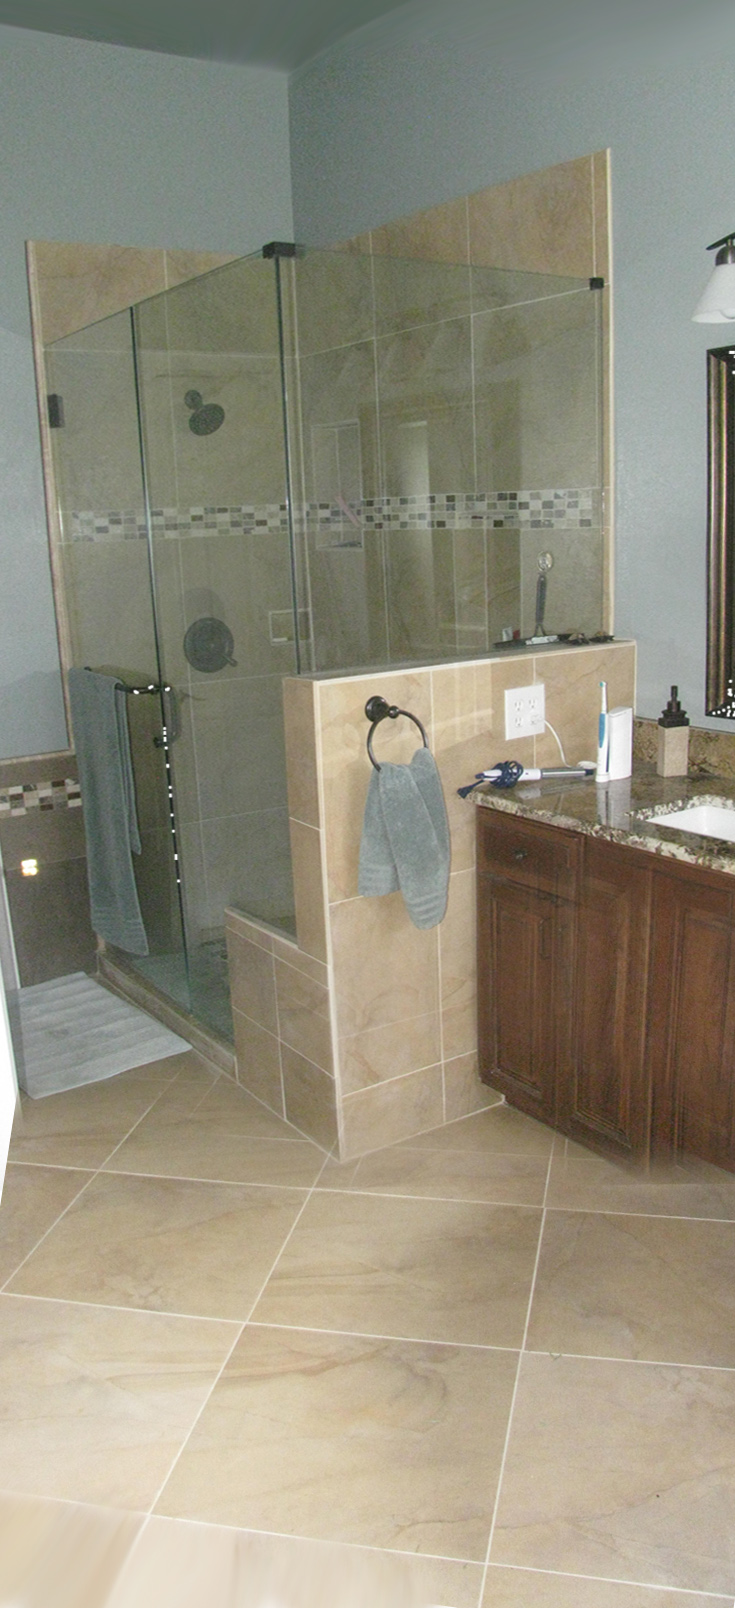 Bathroom Remodel Highlands Ranch Images Bathroom Remodeling - Bathroom remodel highlands ranch co